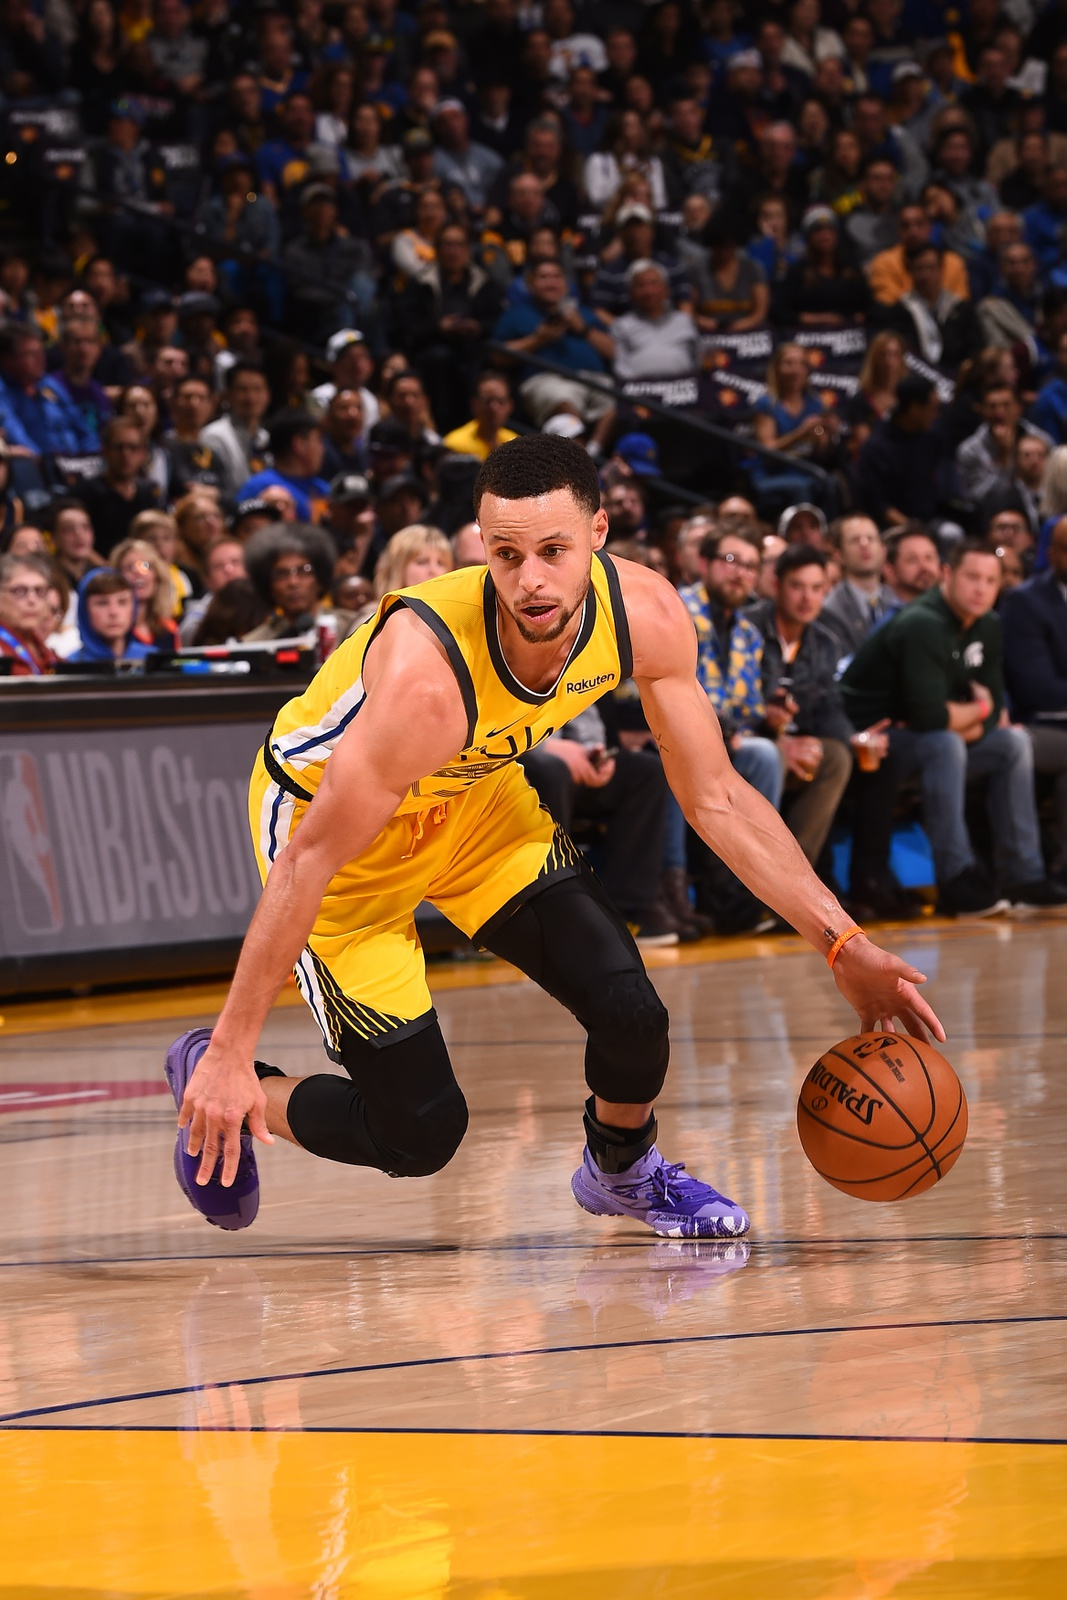 Stephen Curry #30 of the Golden State Warriors handles the ball against the Denver Nuggets on March 8, 2019 at ORACLE Arena in Oakland, California.